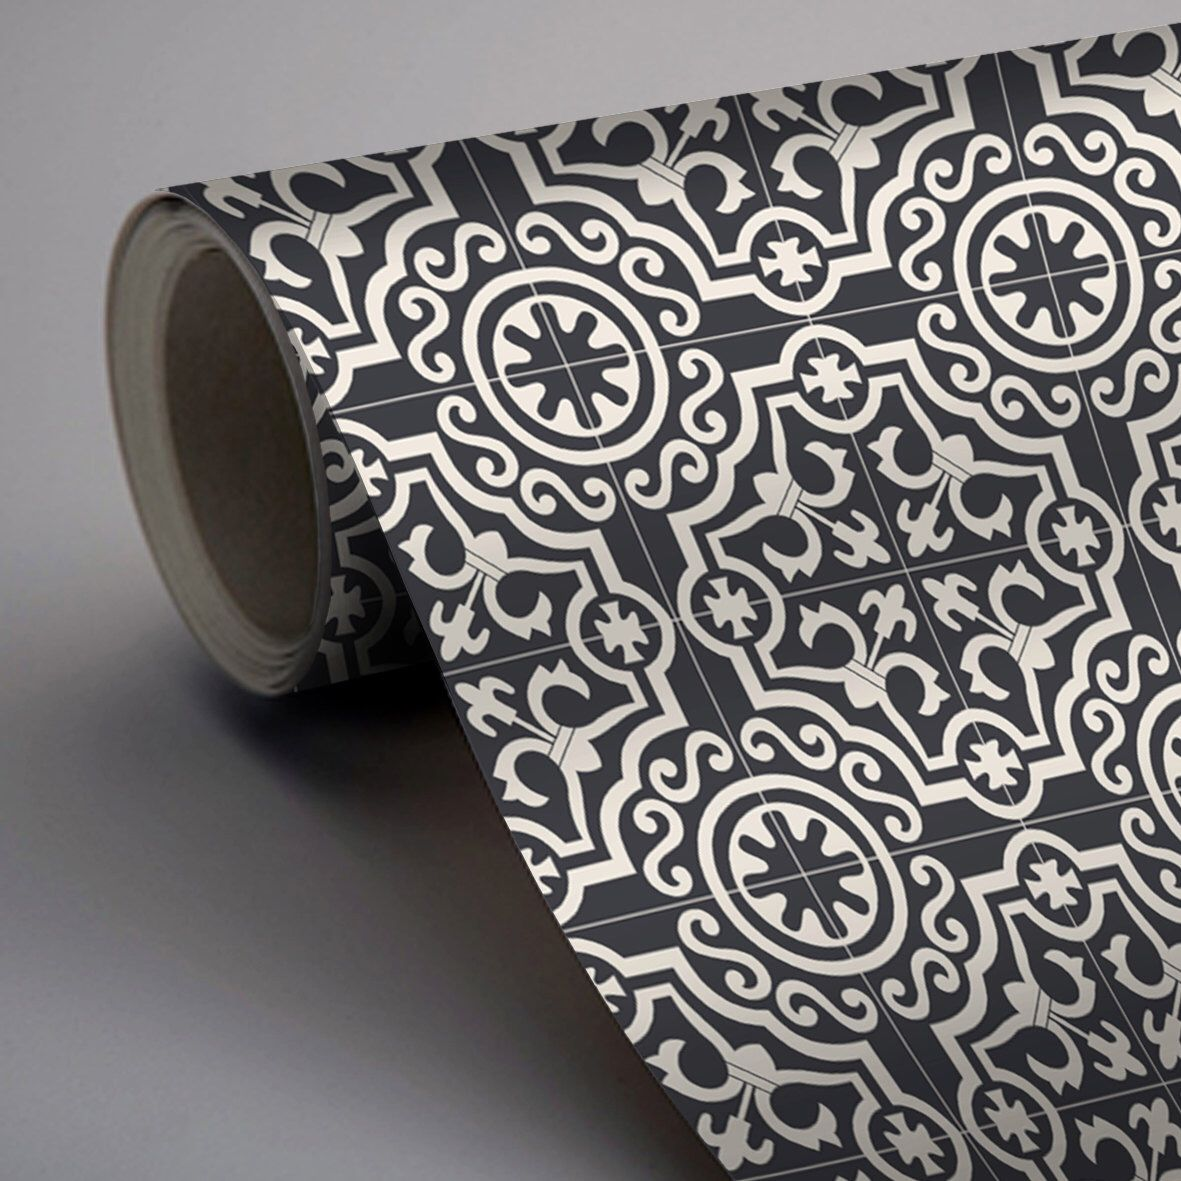 Moroccan Lys Wallpaper In Black Removable Vinyl Wallpaper Etsy Vinyl Wallpaper Patchwork Tiles Wallpaper